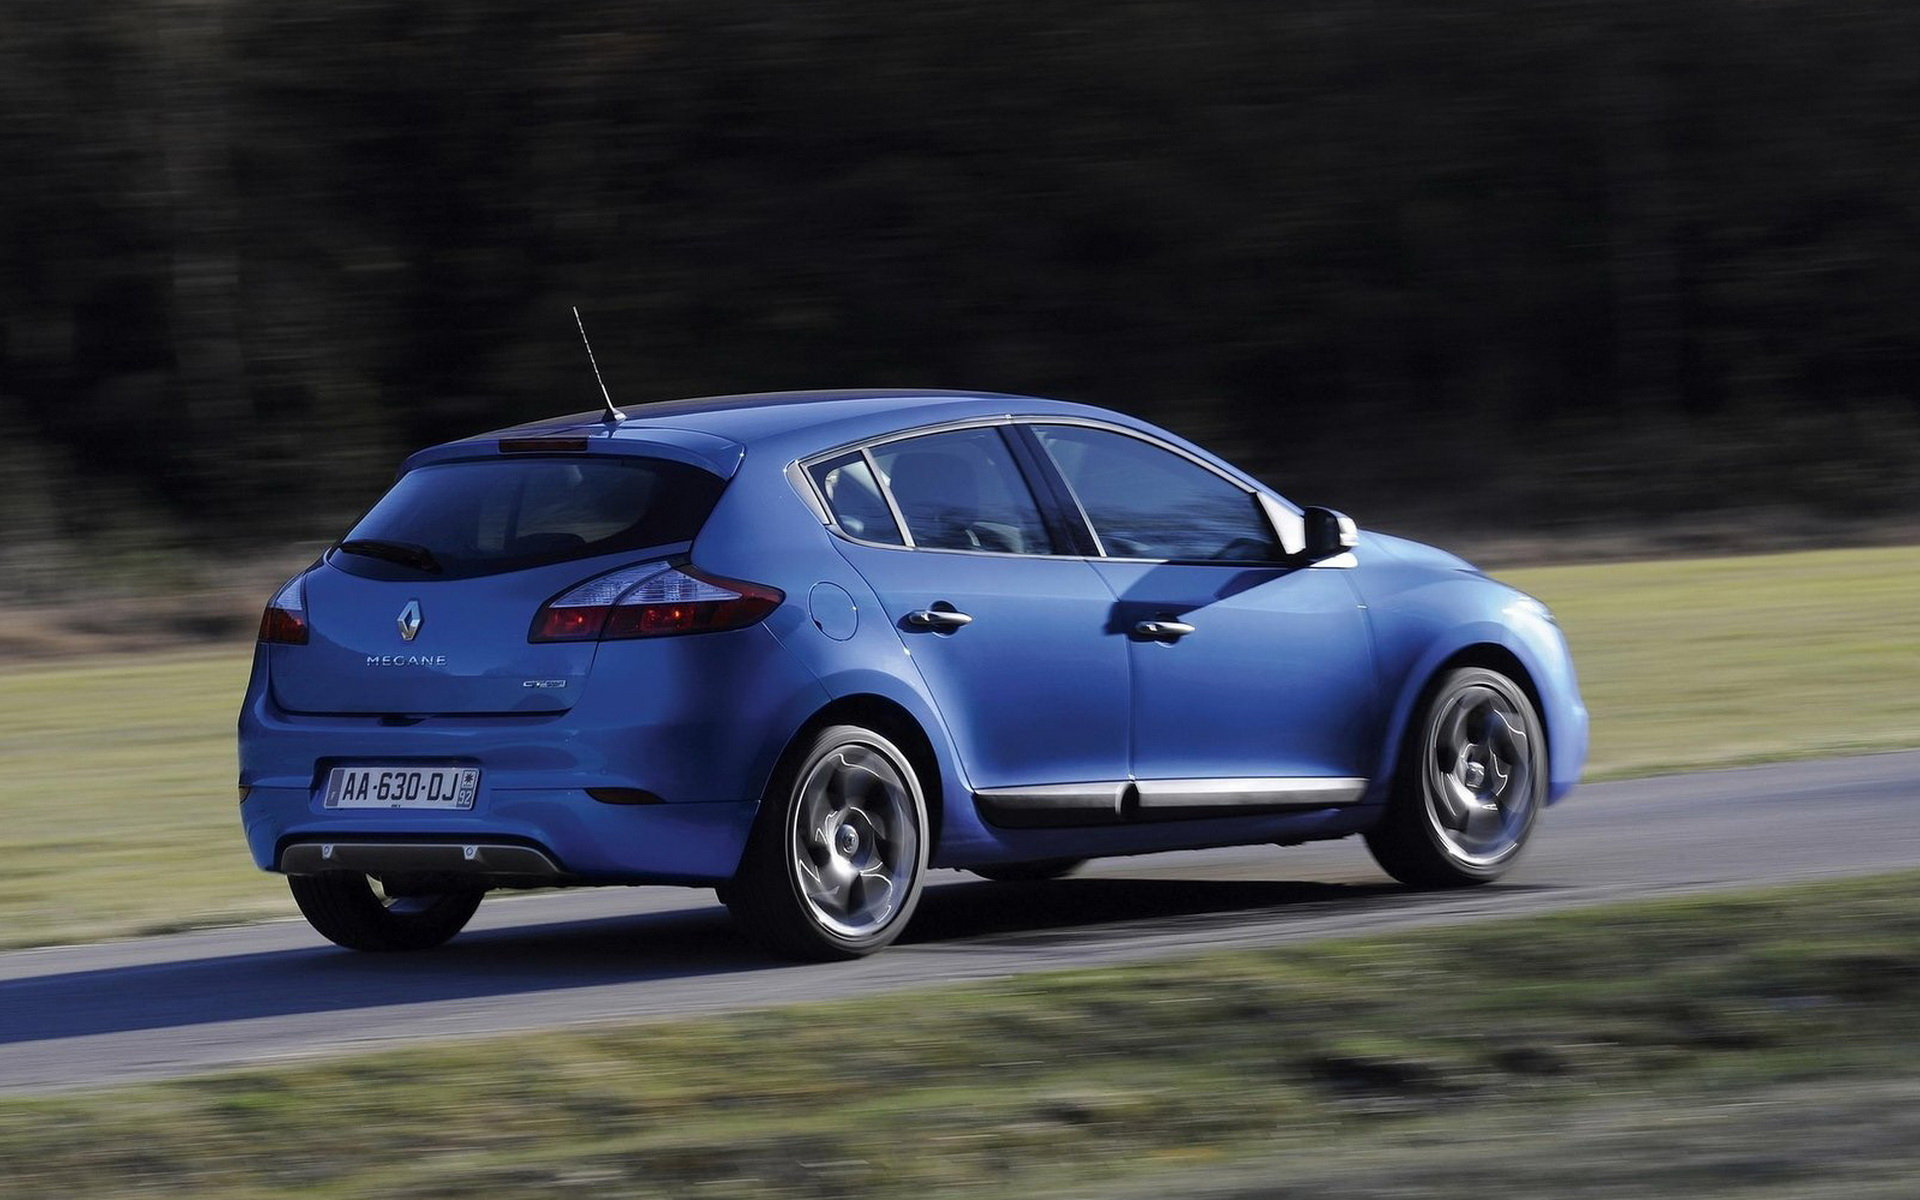 Le Meilleur Renault Megane Gt 2011 Wallpapers And Images Wallpapers Ce Mois Ci